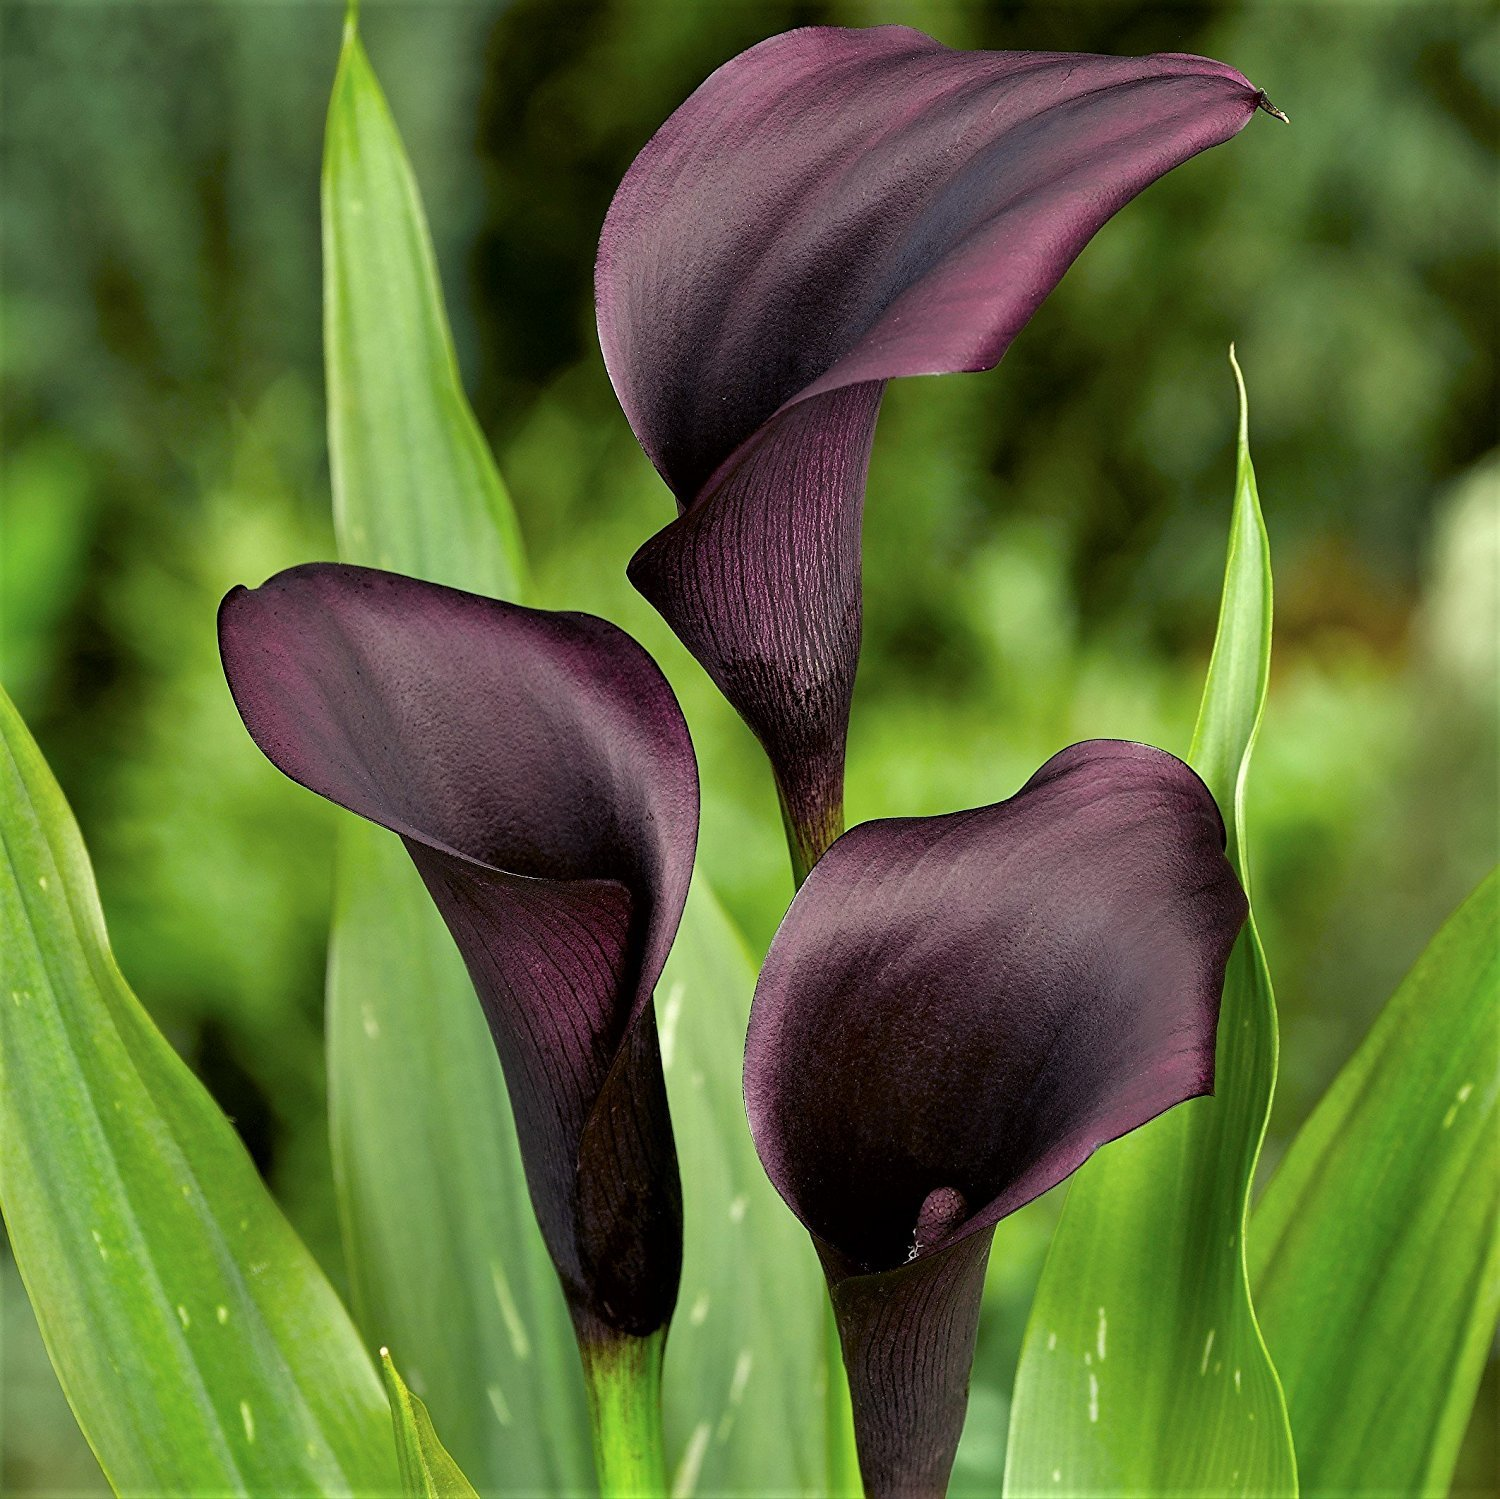 Black Calla Lily Odessa (3 BULBS - Not Just Seeds!) Zantedeschia Tubers - GORGEOUS! by EGBULBS (Image #1)